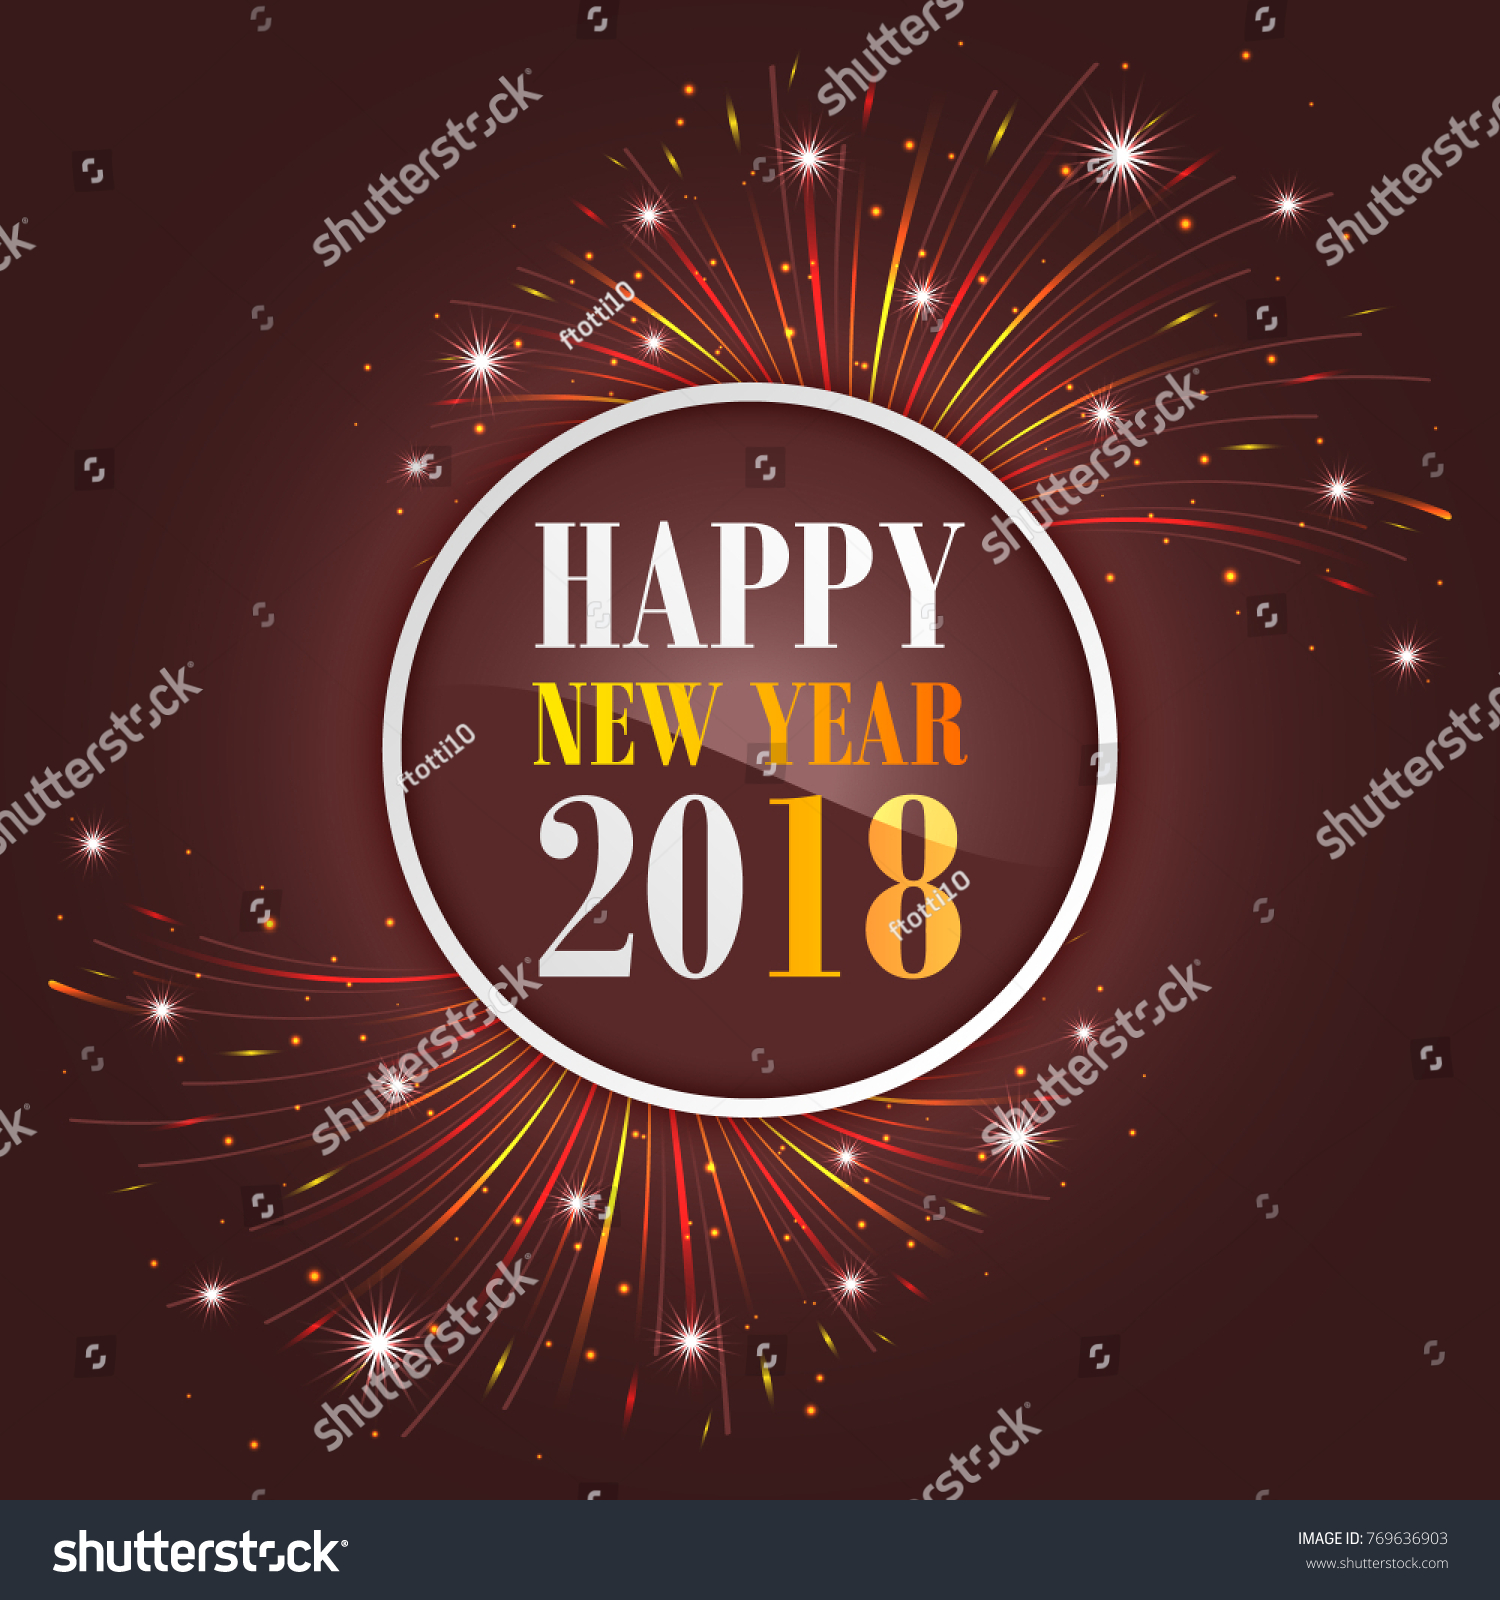 New year greetings 2018 fireworks sparkle stock vector 769636903 new year greetings 2018 with fireworks sparkle stars and glitter vector illustration kristyandbryce Image collections